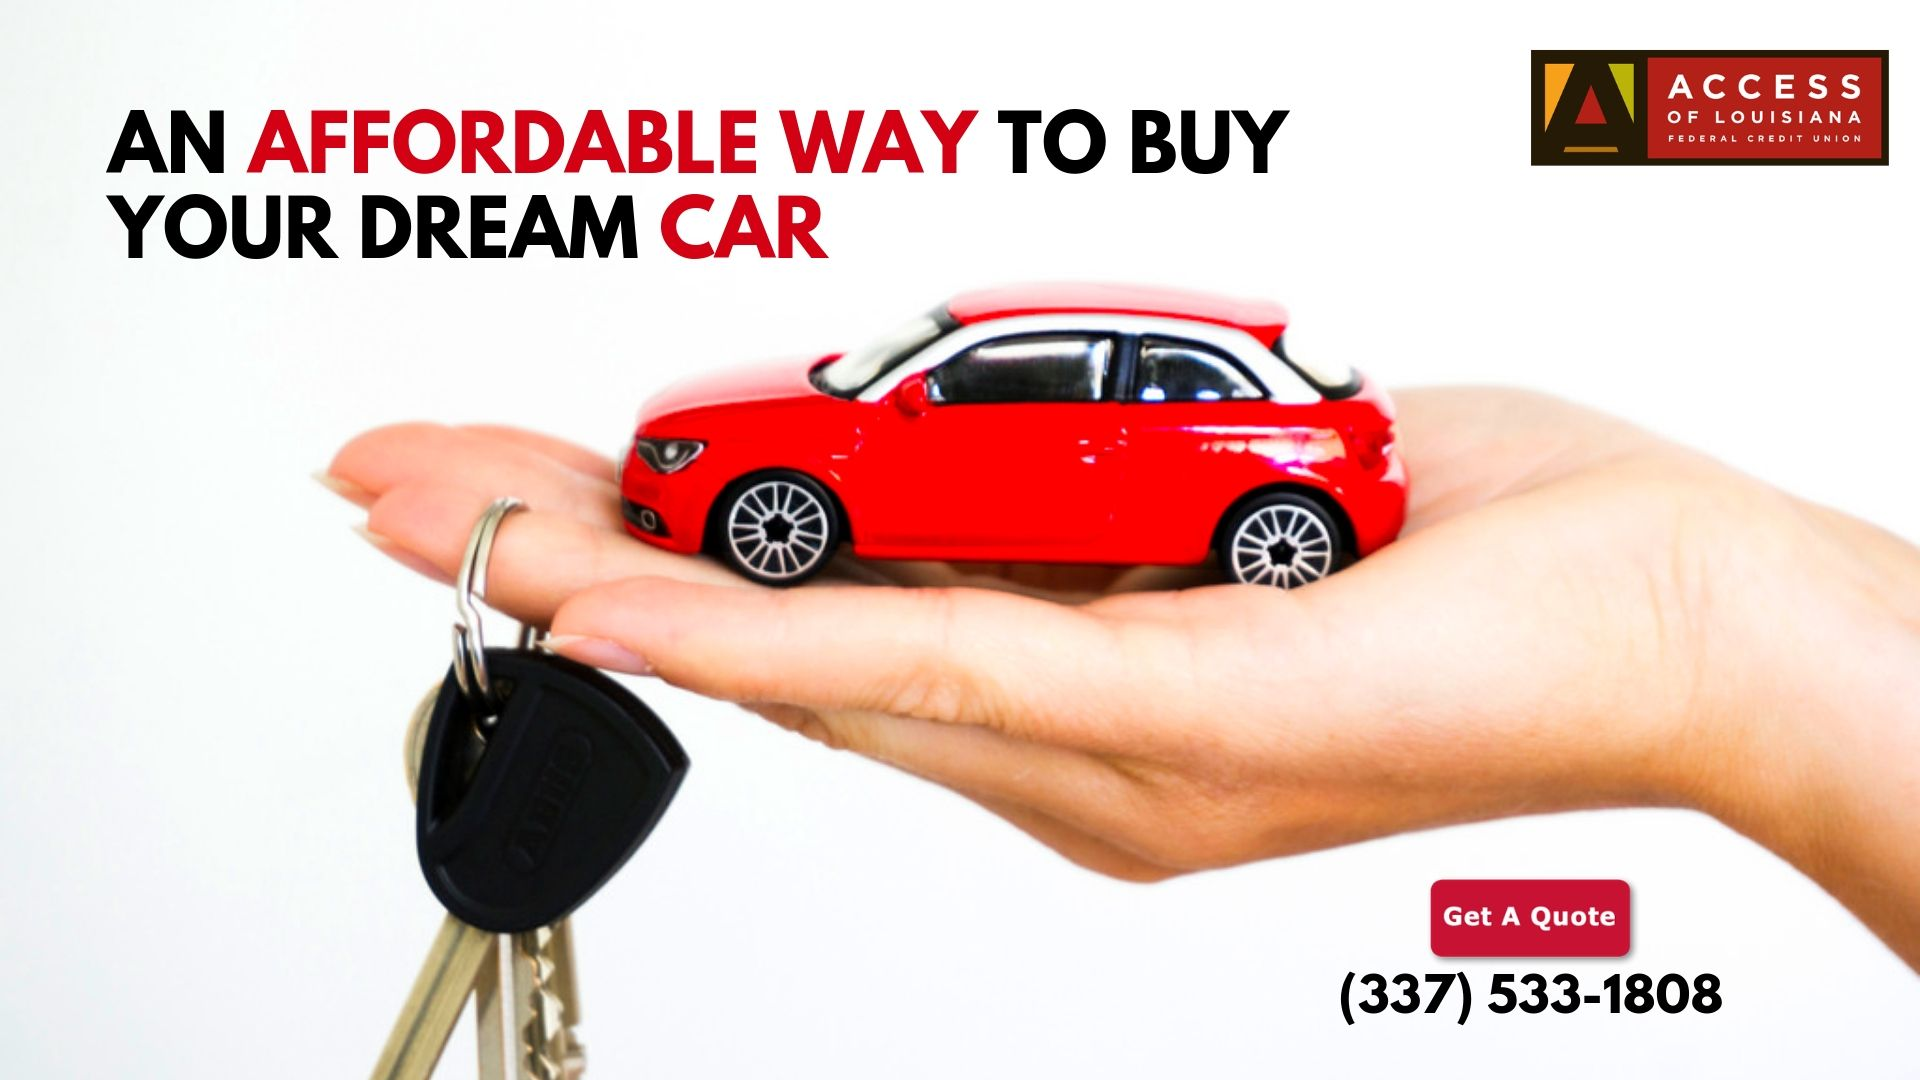 Fast Auto Loan Approval Process With Lower Emi Car Loans Cars For Sale Cars For Sale Philippines